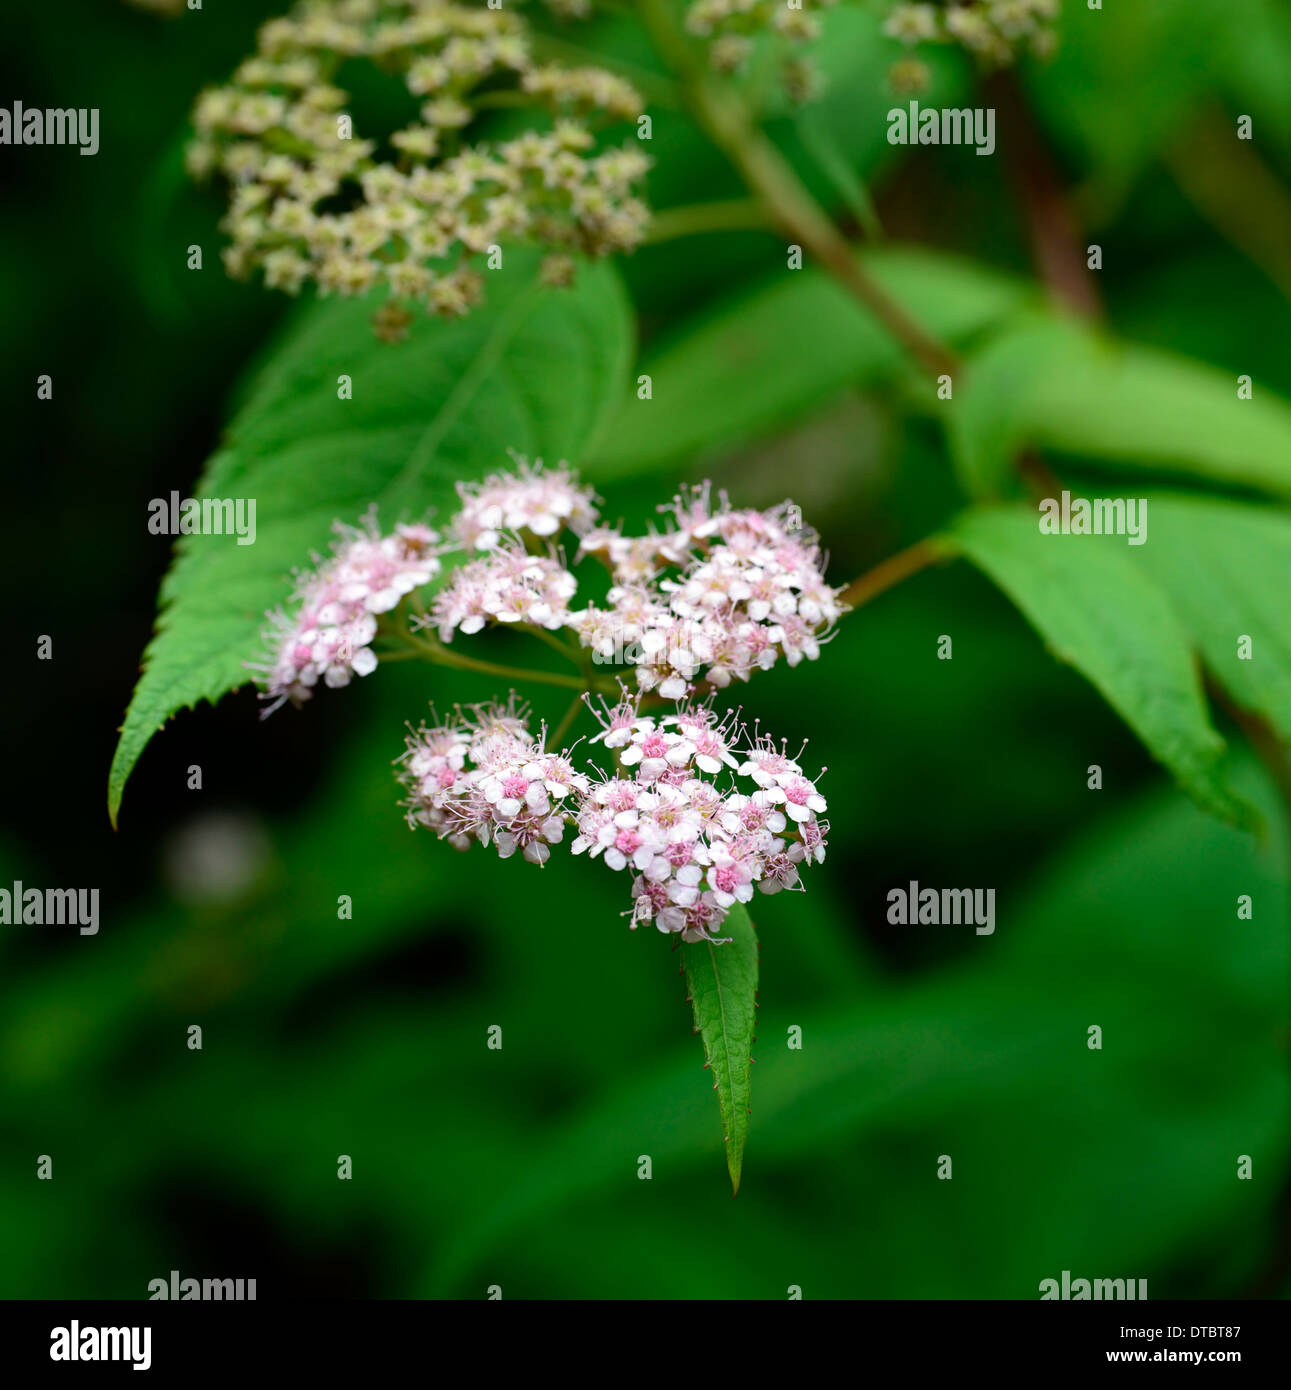 Spiraea japonica var fortunei plant portraits flowers flowering spiraea japonica var fortunei plant portraits flowers flowering shrubs green leaf leaves foliage small tiny pink dhlflorist Gallery